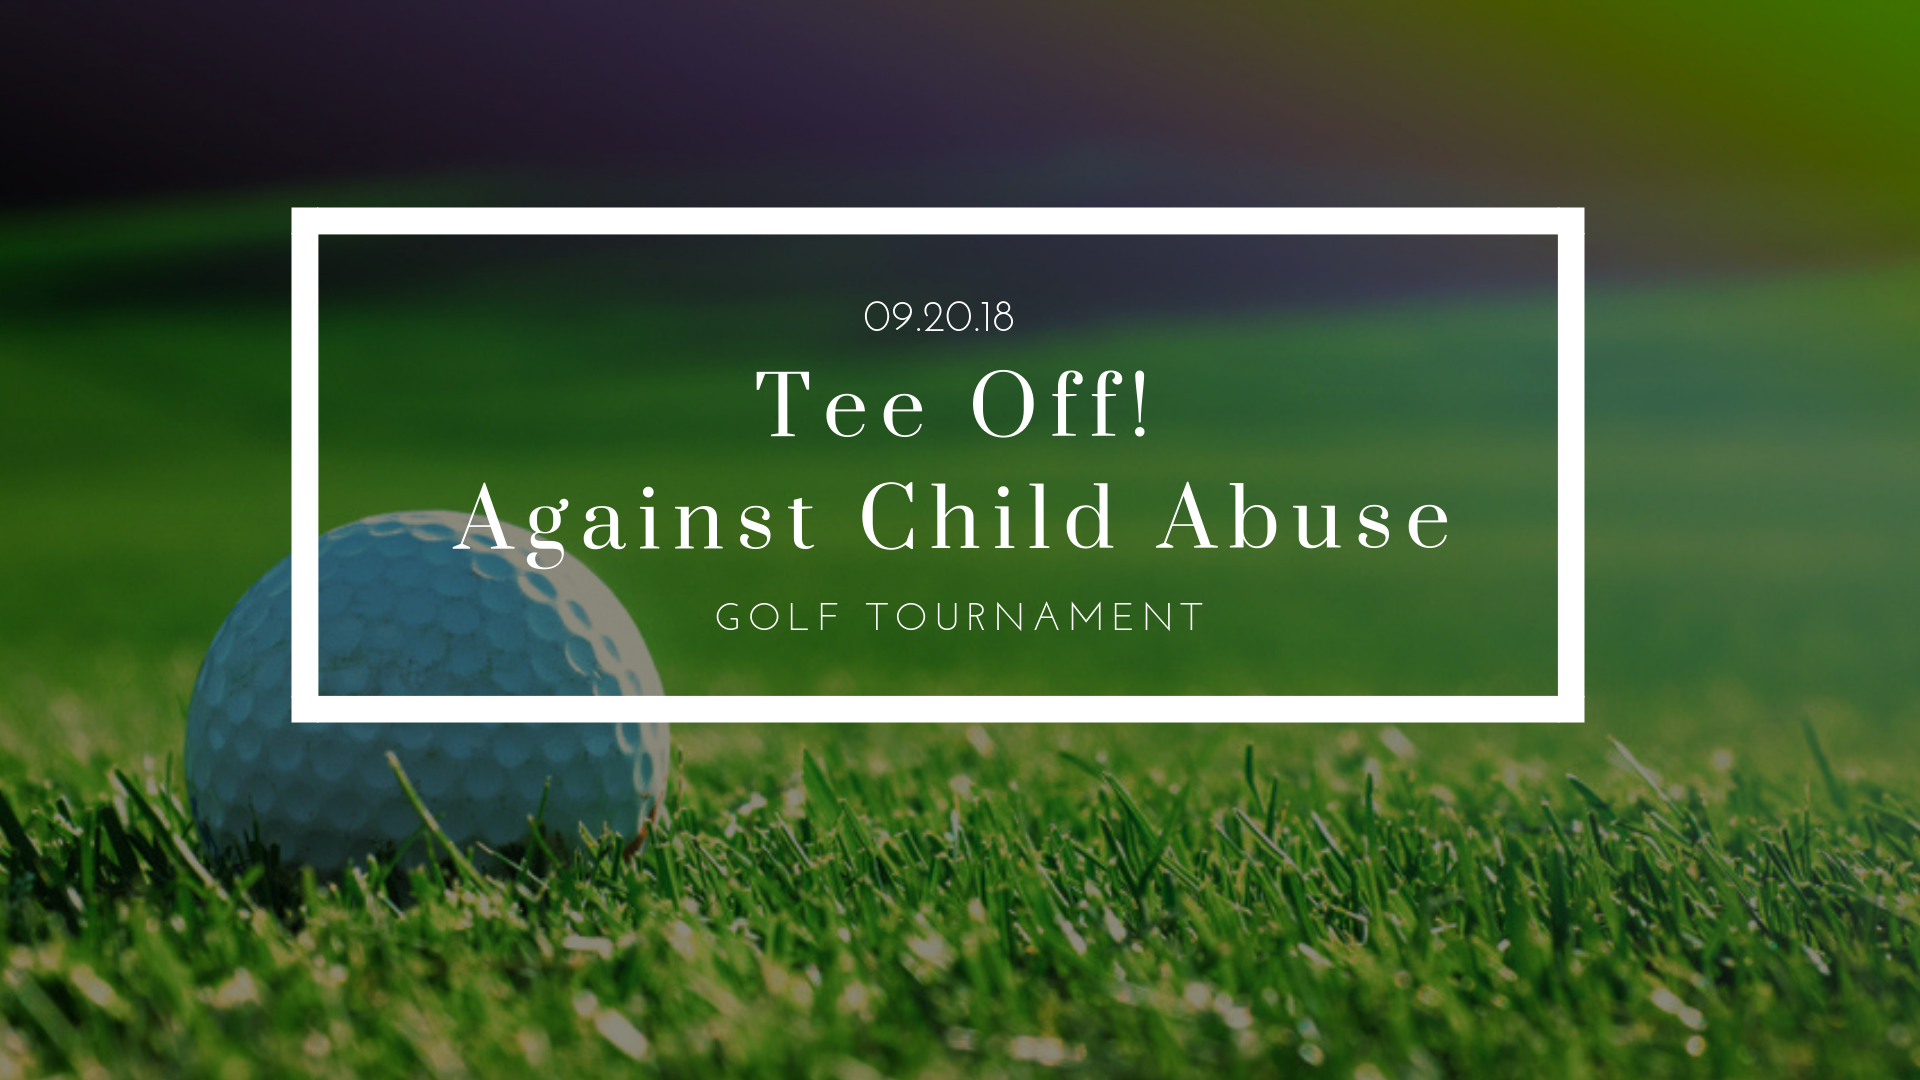 Tee Off! Against Child Abuse